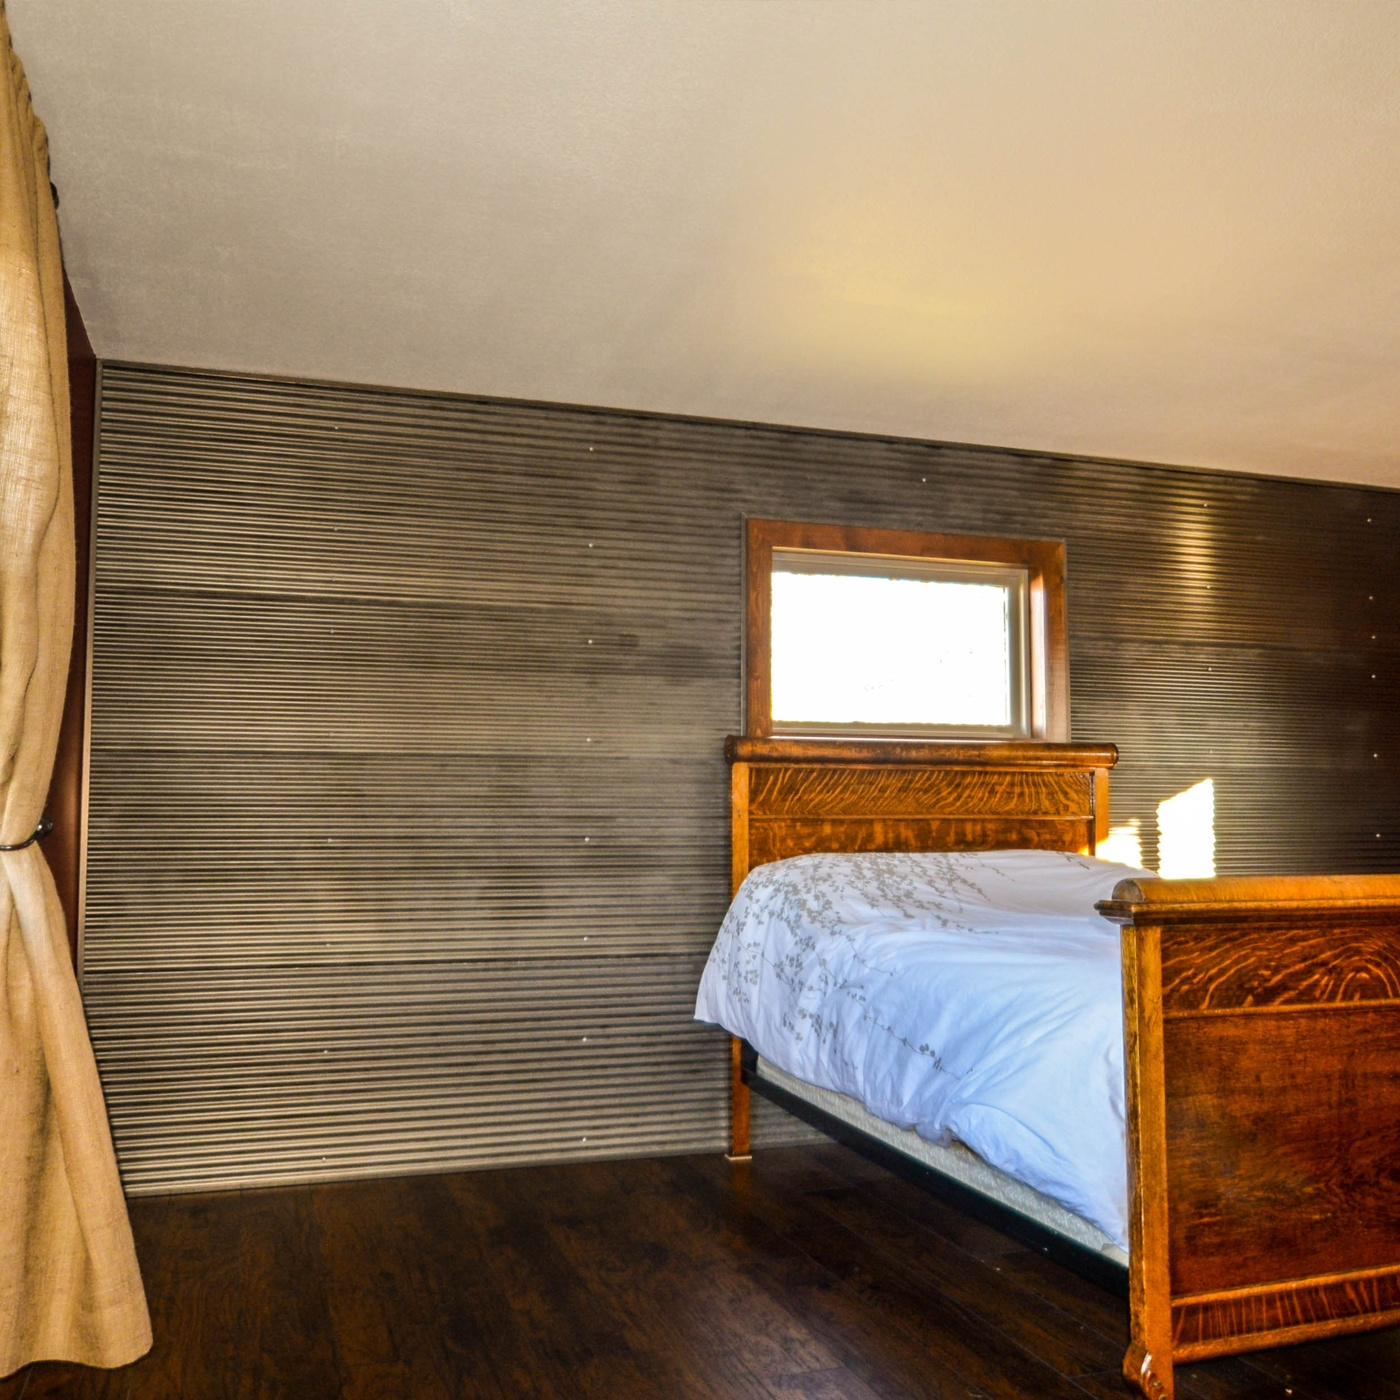 Bedroom Stainless Steel Wall Panels